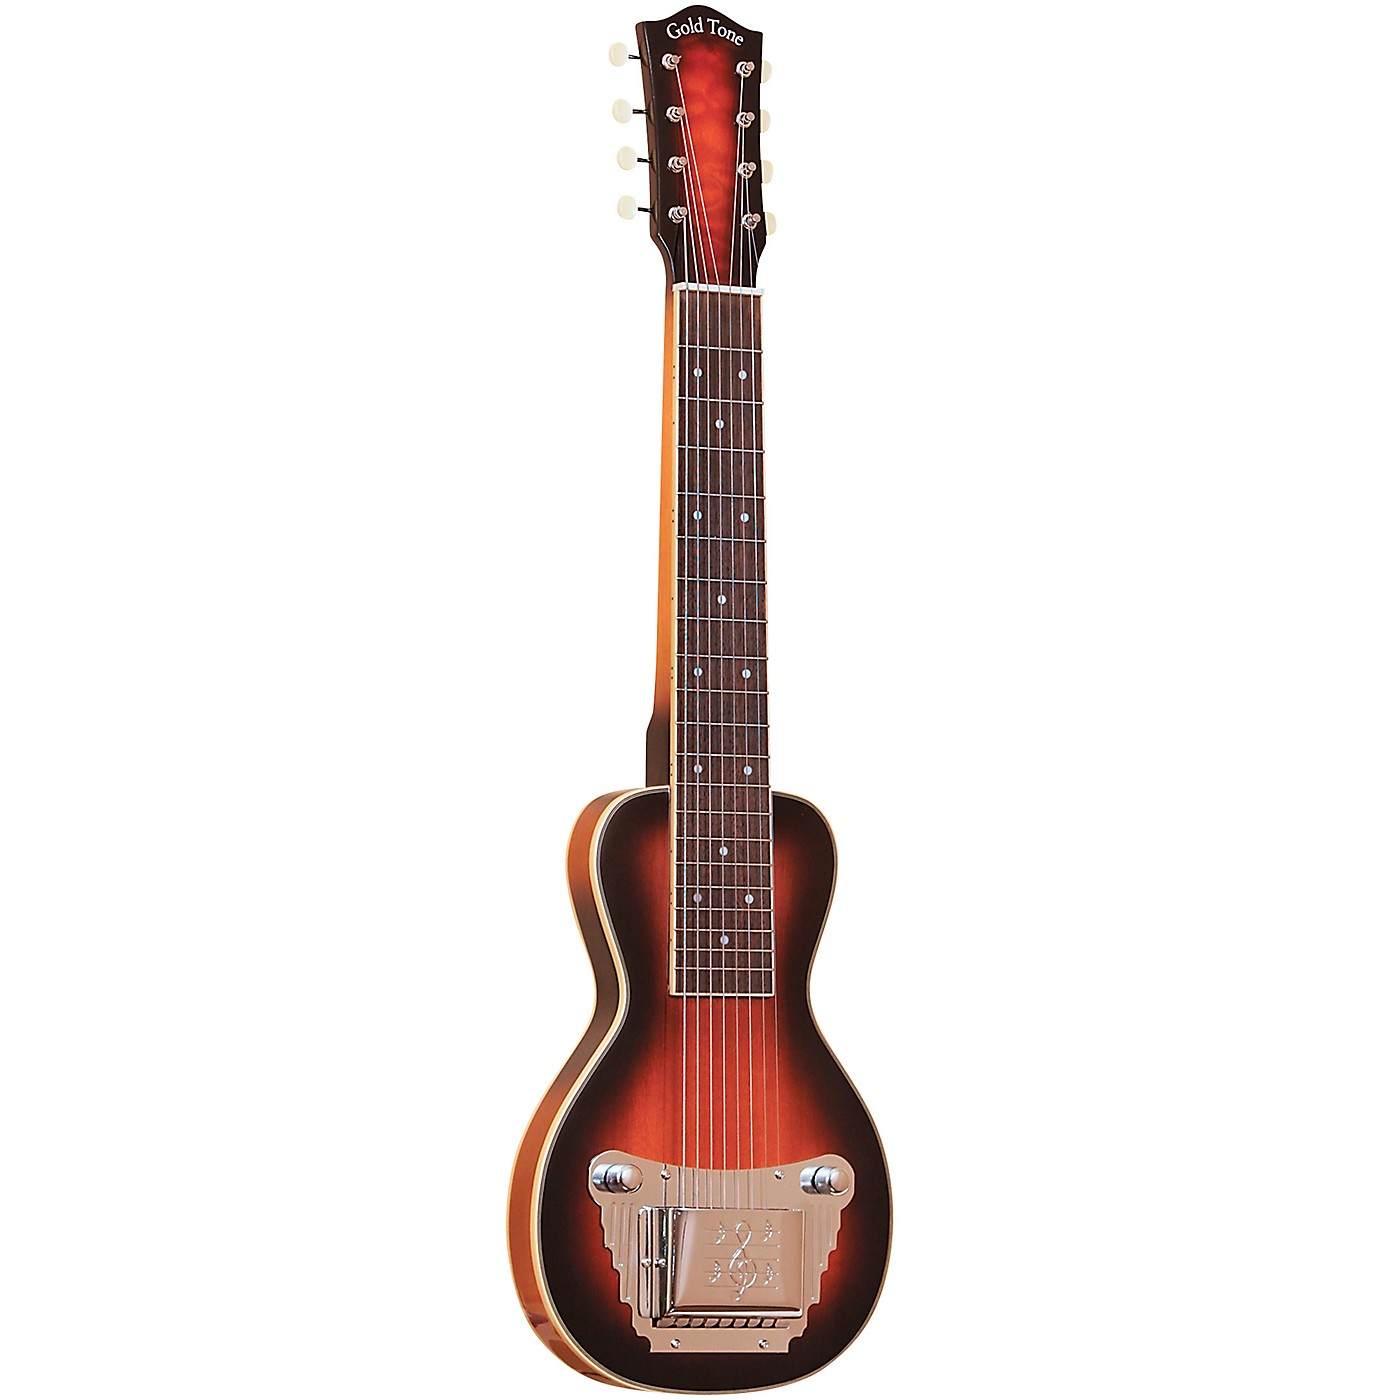 Gold Tone 8-String Solid Body Lap Steel thumbnail